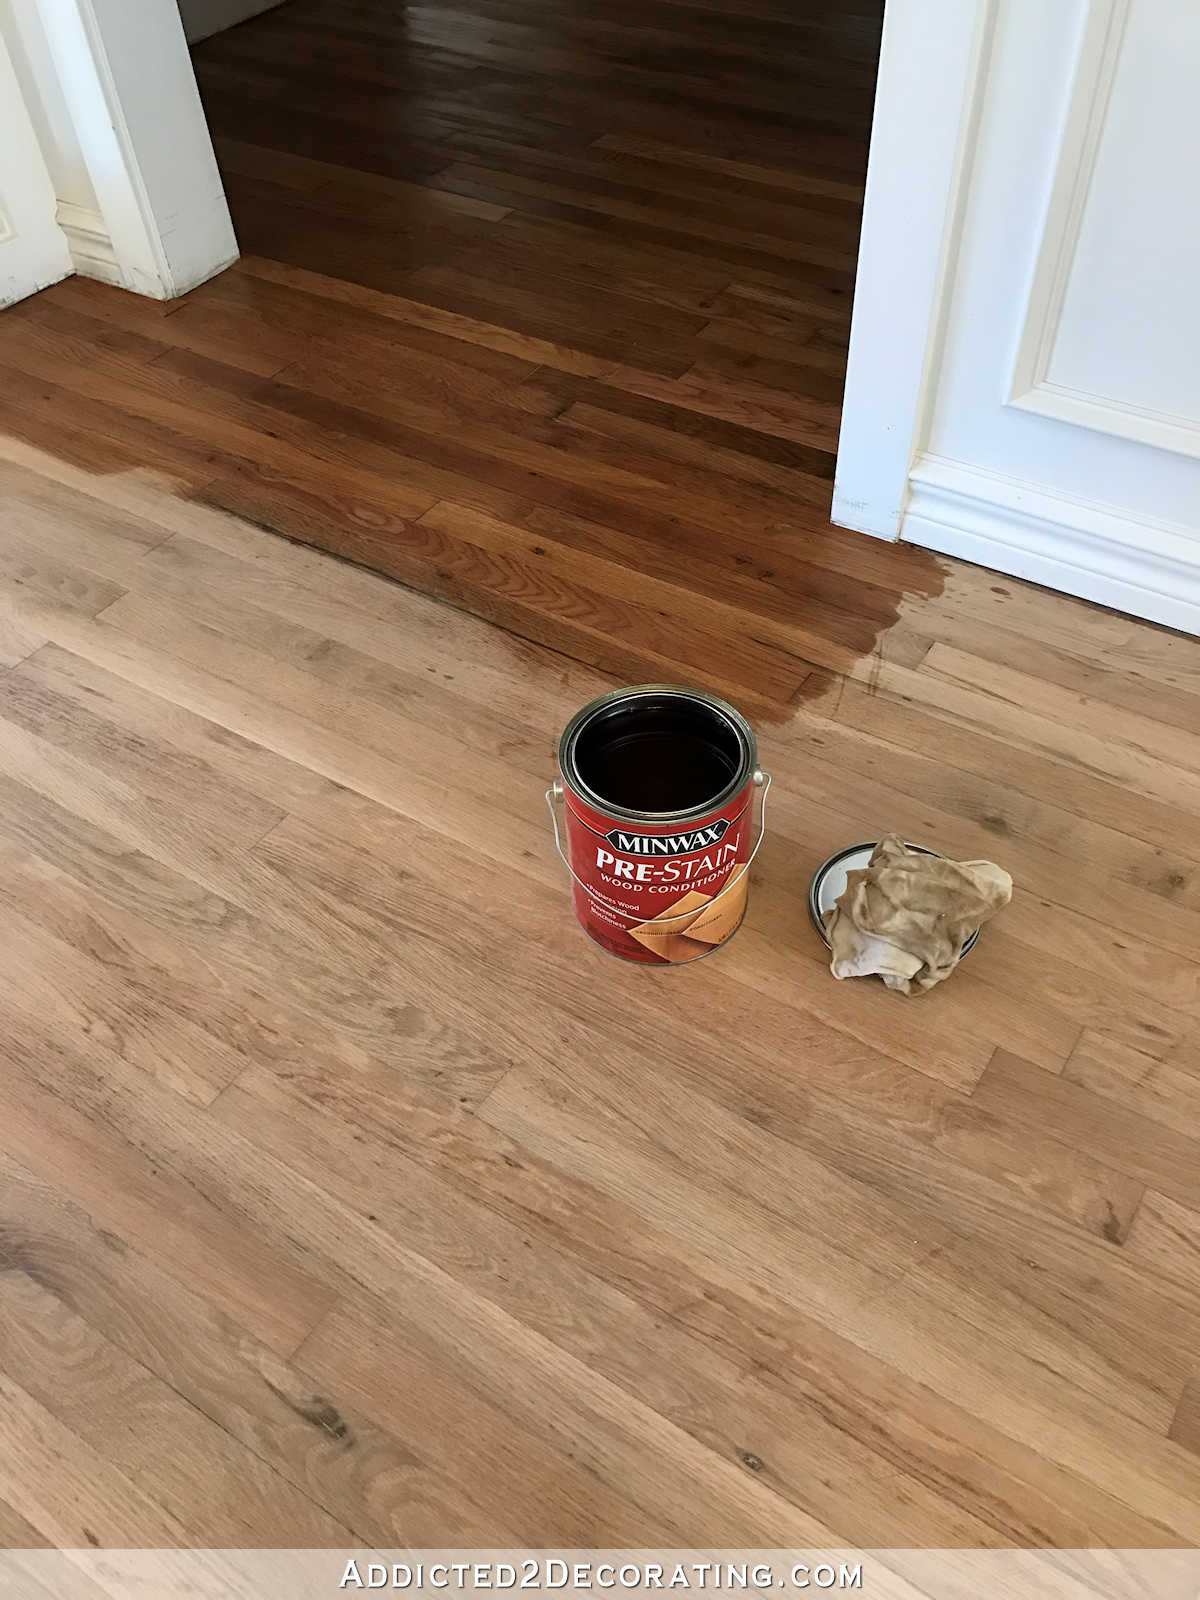 before and after pictures of refinished hardwood floors of adventures in staining my red oak hardwood floors products process with regard to staining red oak hardwood floors 1 conditioning the wood with minwax pre stain and then